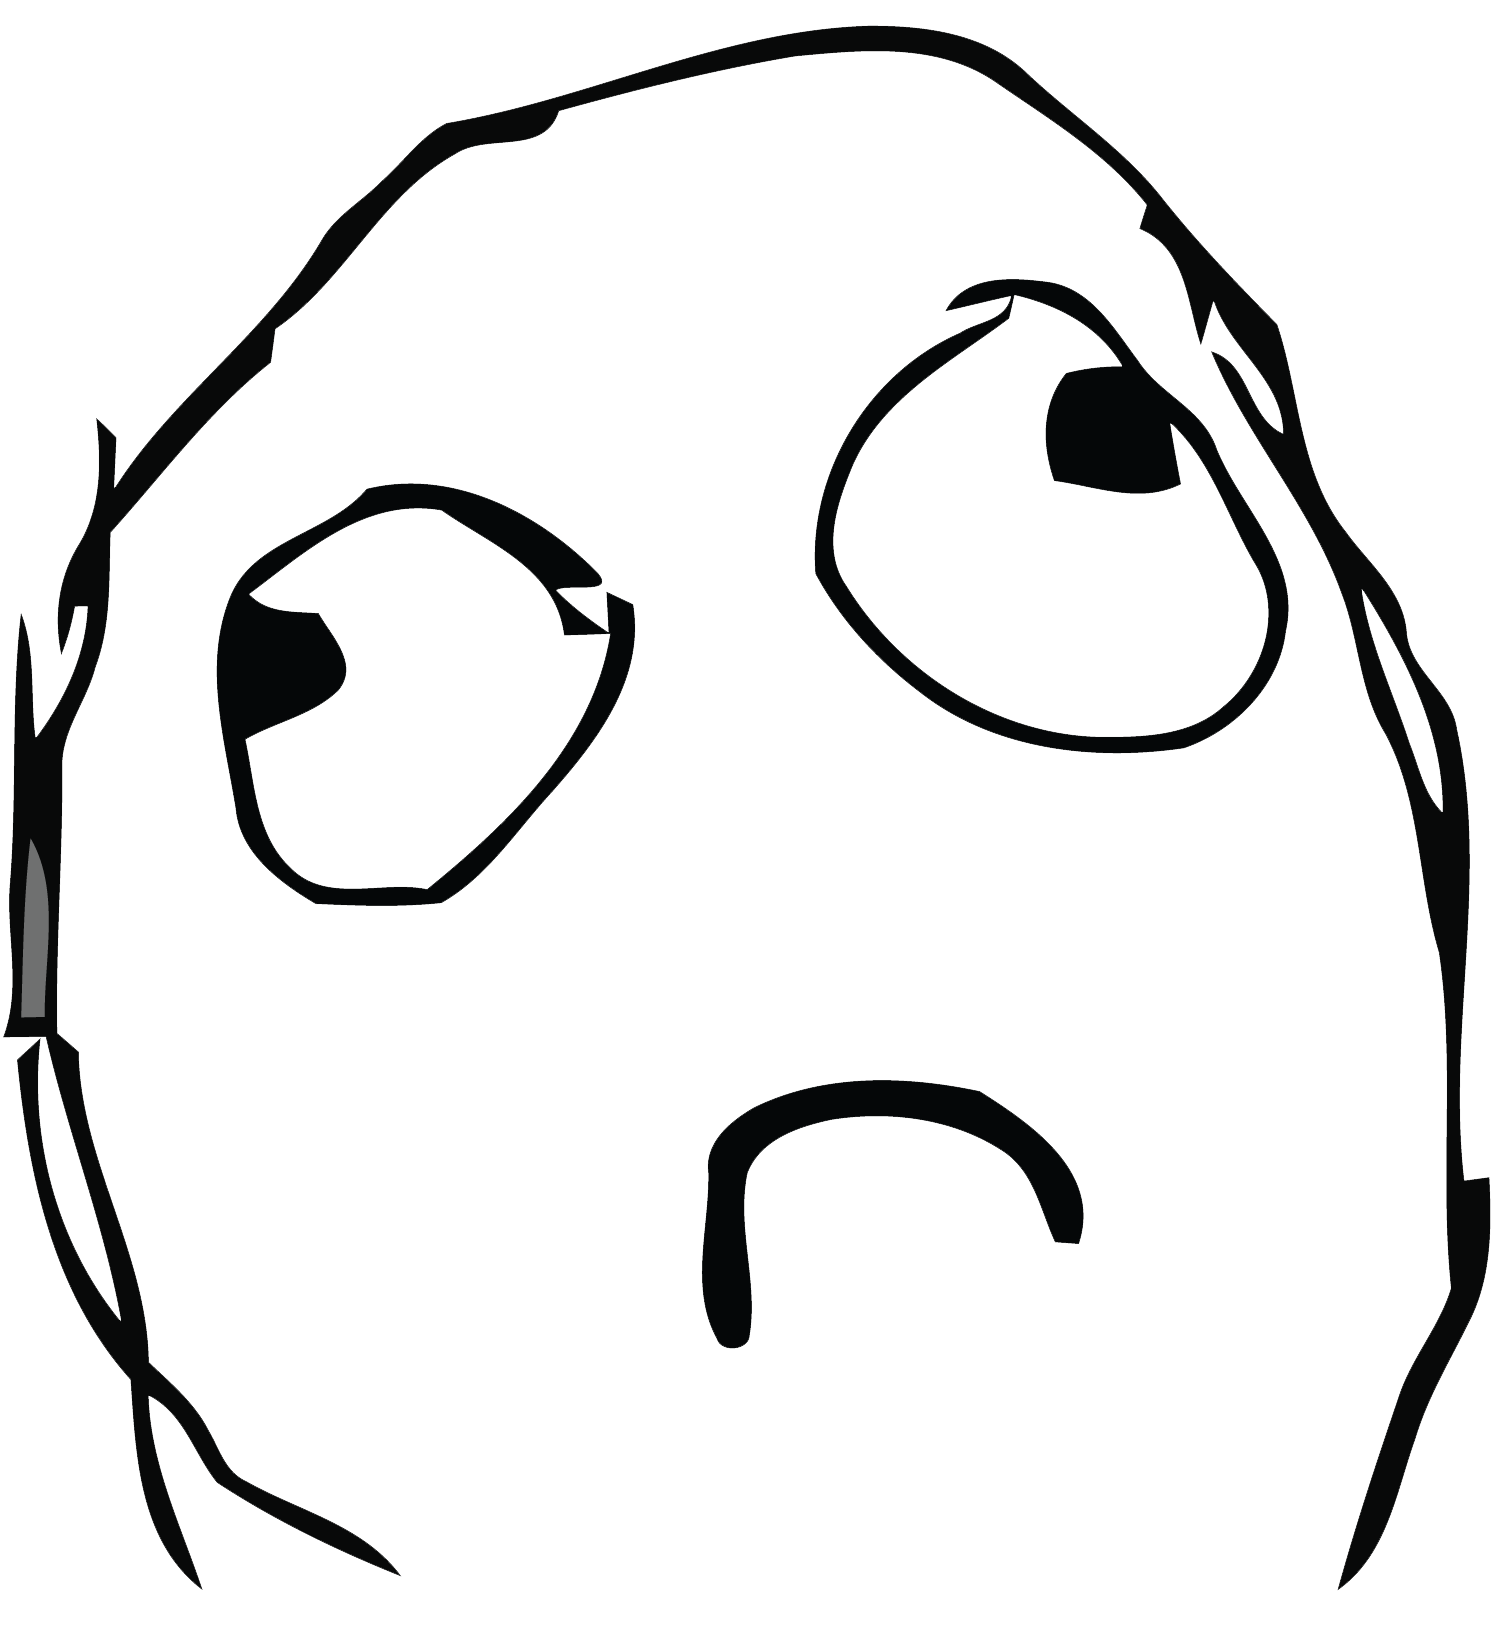 Simple sad troll face. Trollface png no background banner transparent